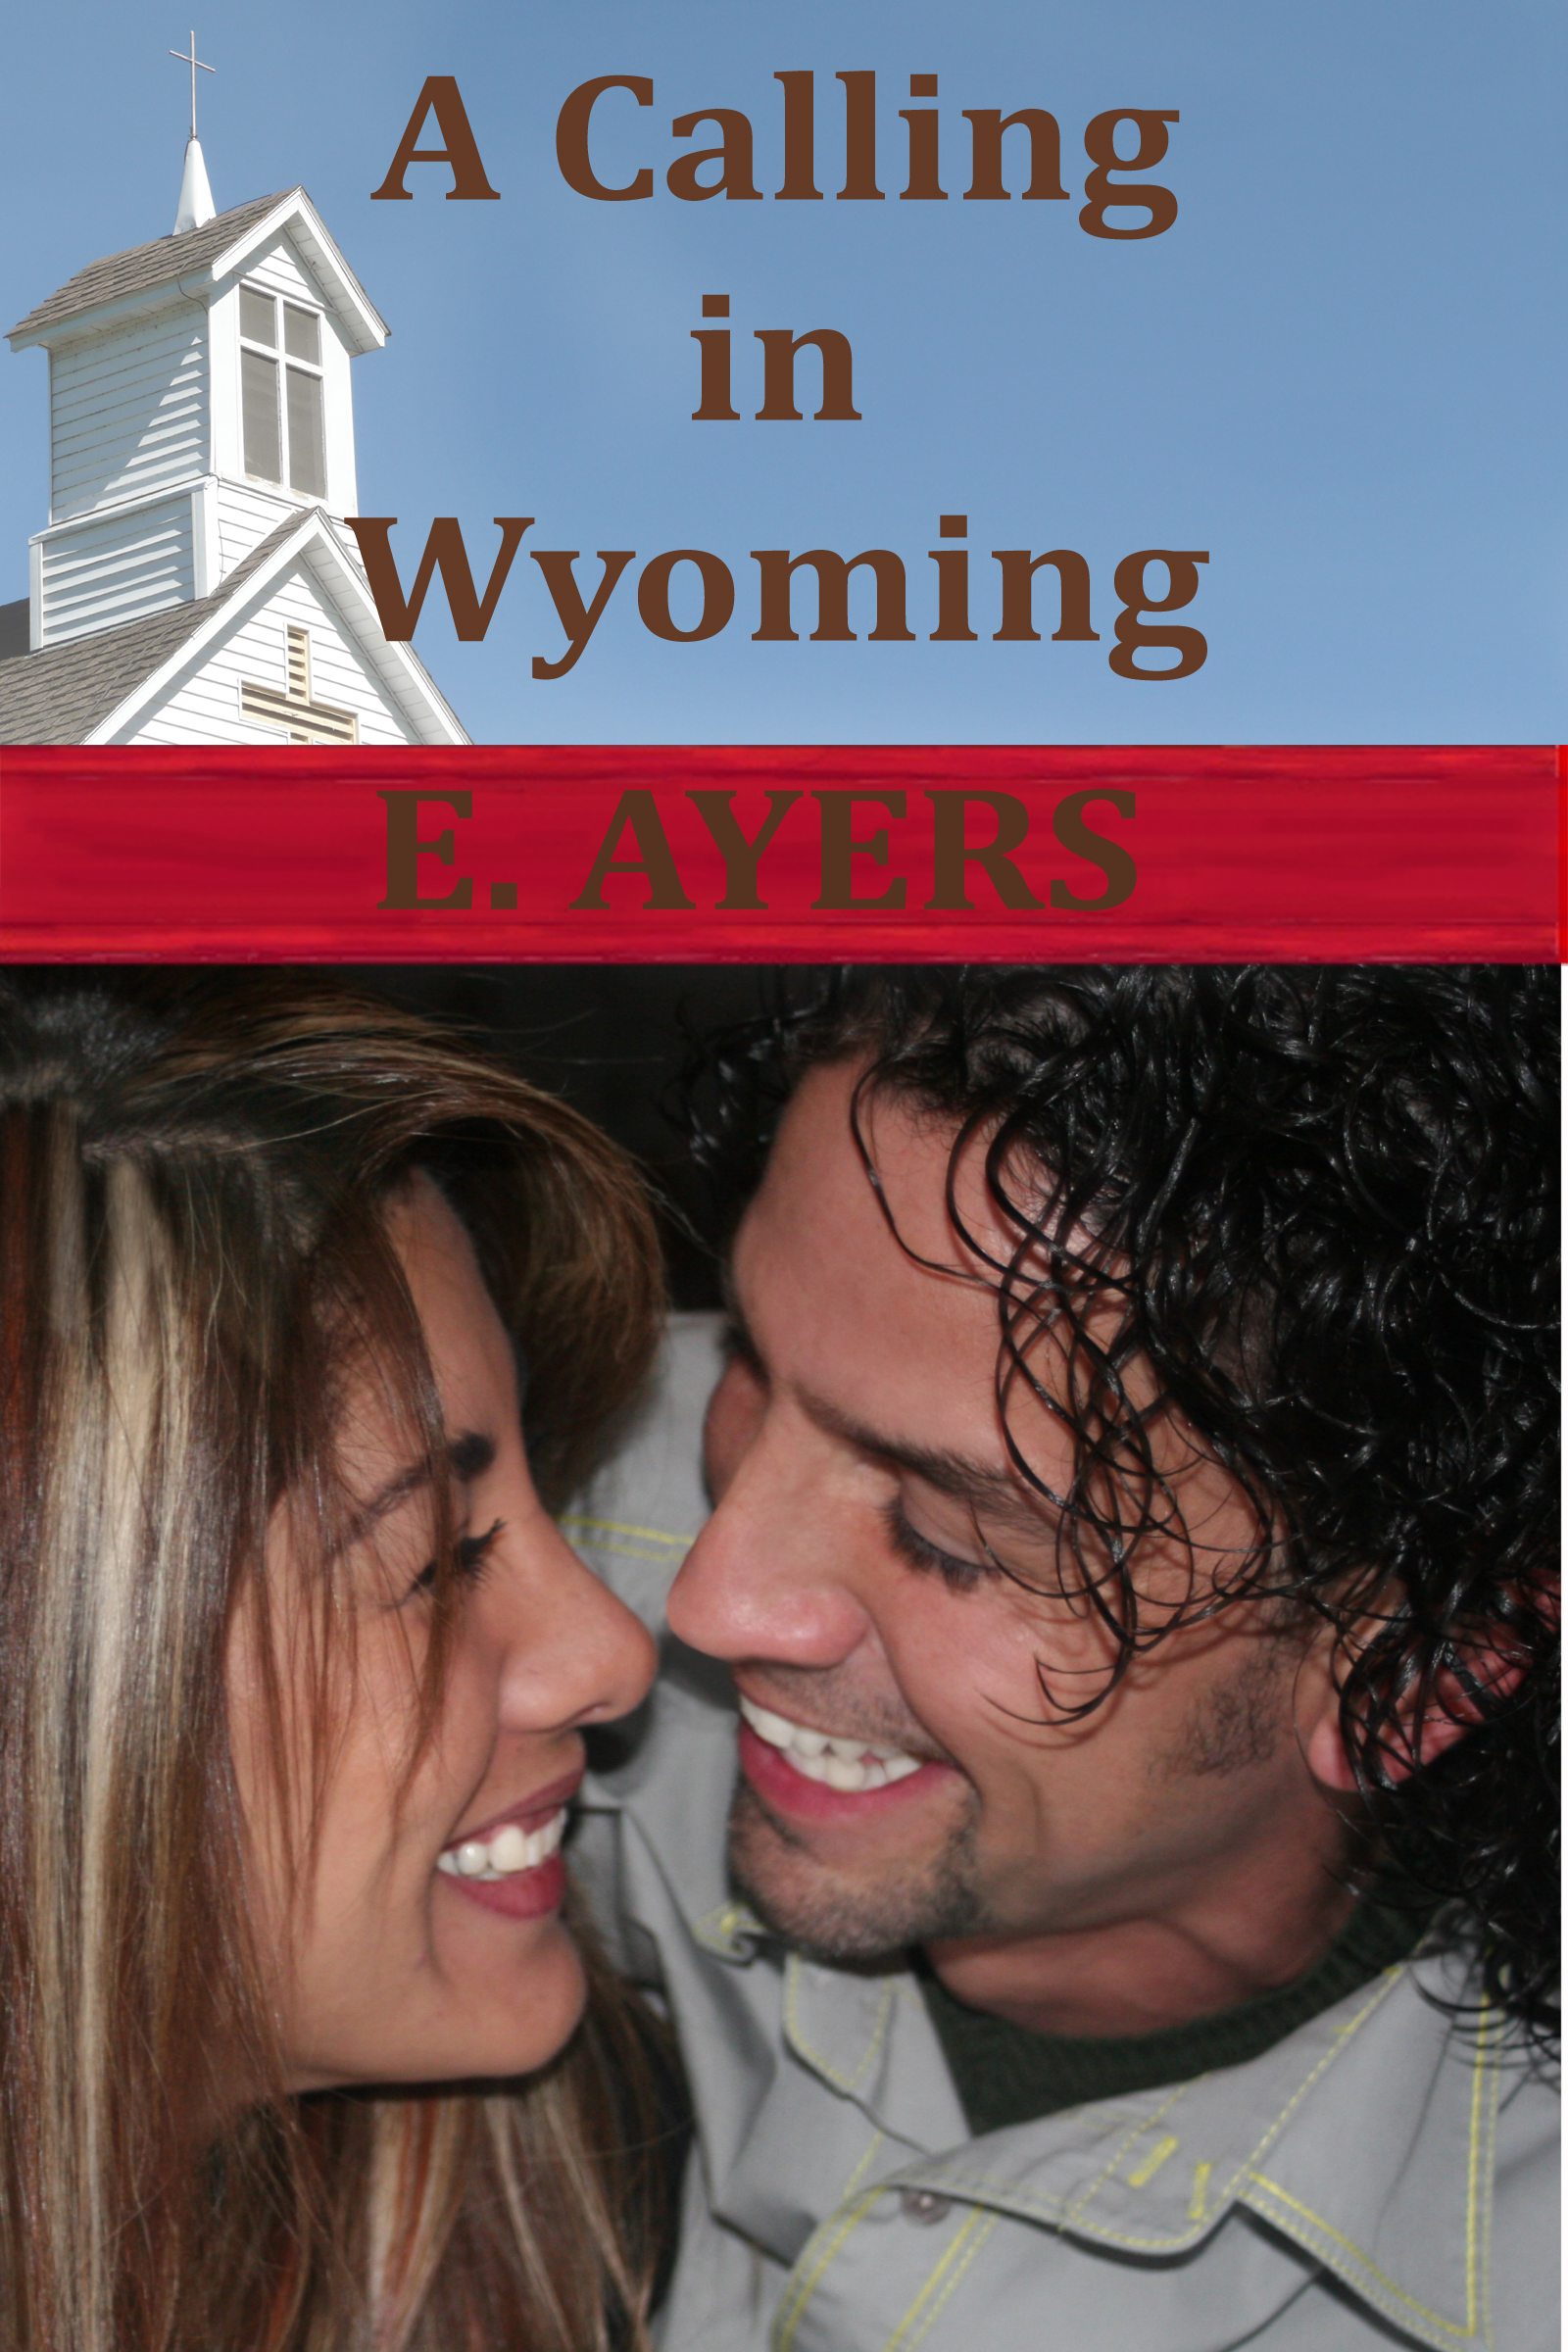 E. Ayers - A Calling in Wyoming